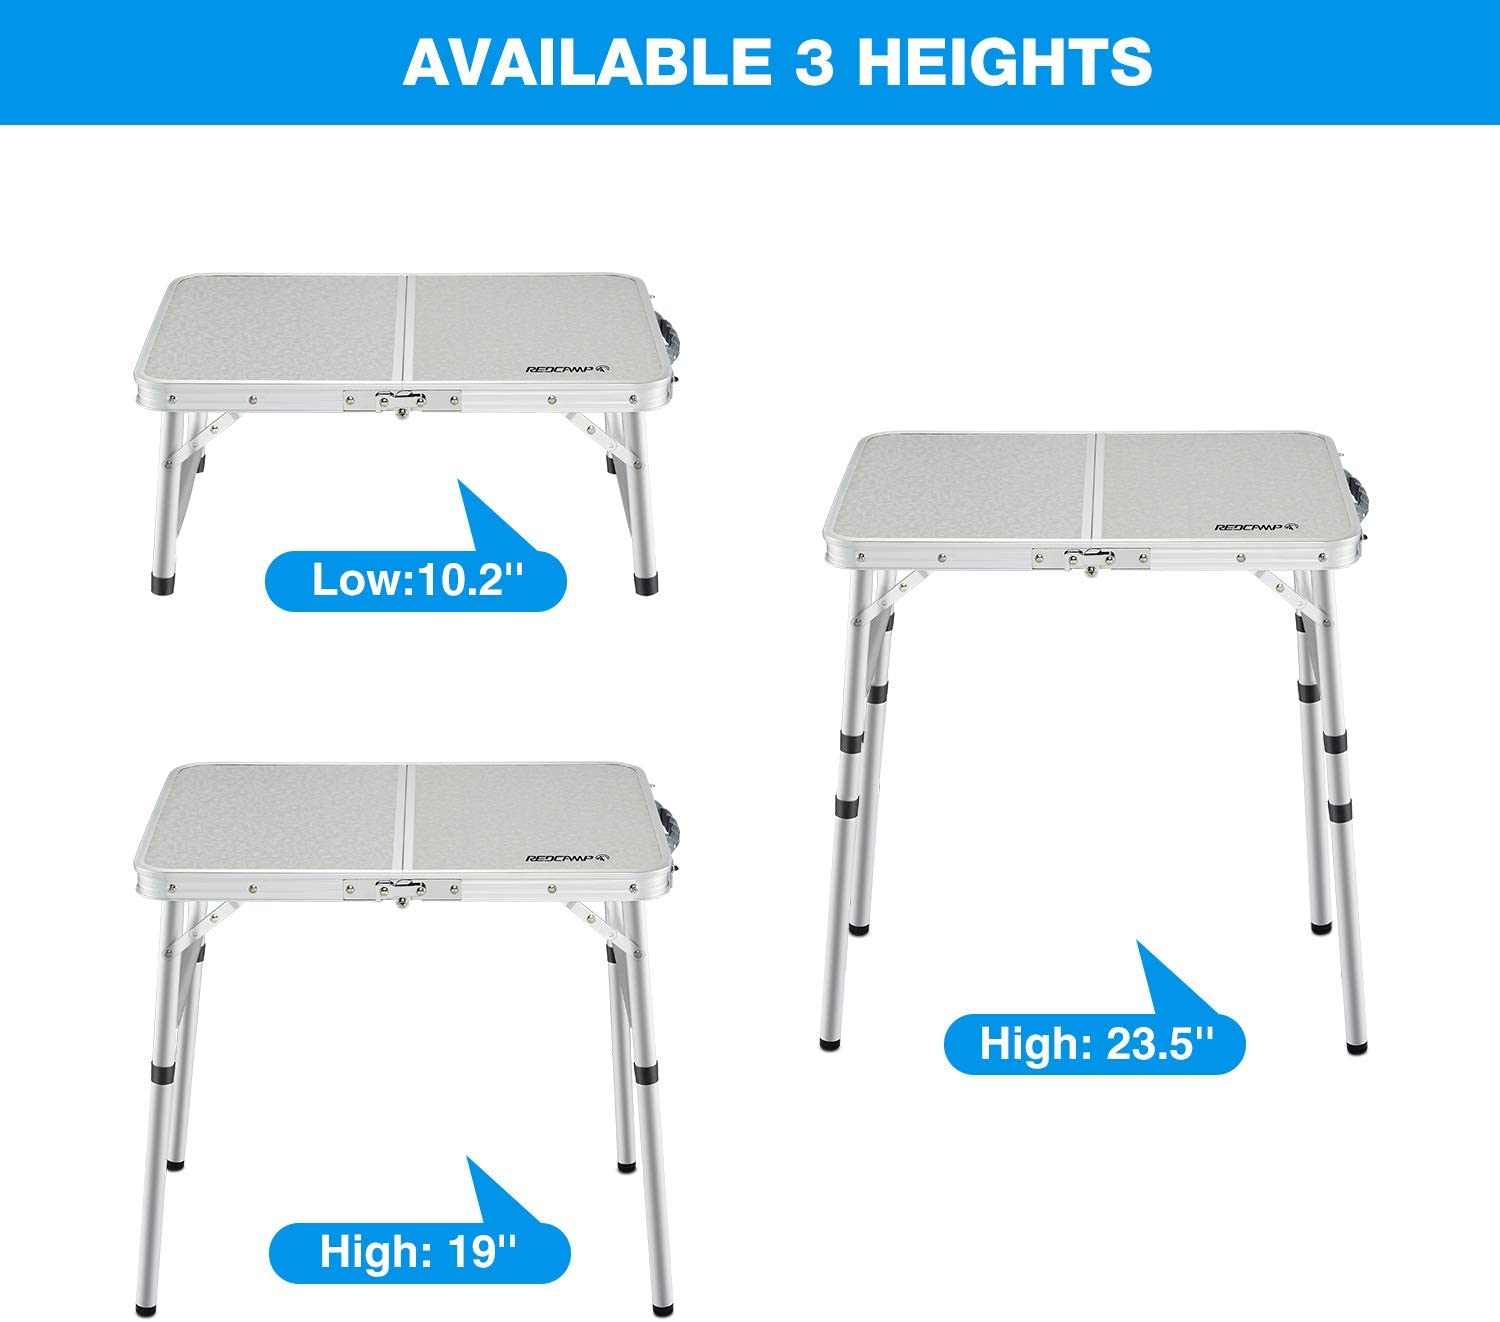 REDCAMP Folding Camping Table Portable Adjustable Height Lightweight Aluminum Folding Table for Outdoor Picnic Cooking White 2//3//4 Foot